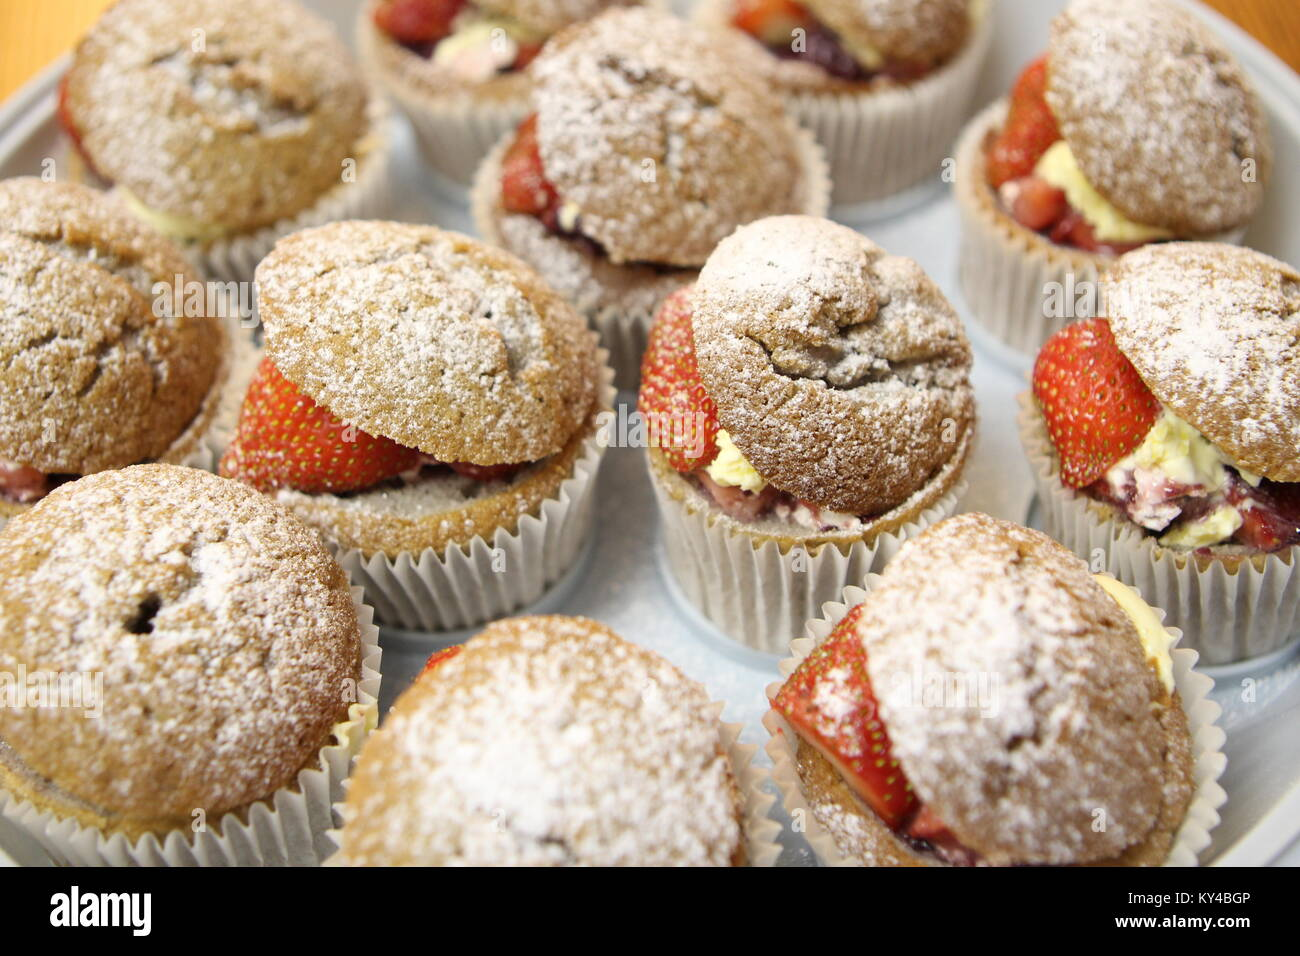 Homemade strawberry and cream cupcakes. - Stock Image